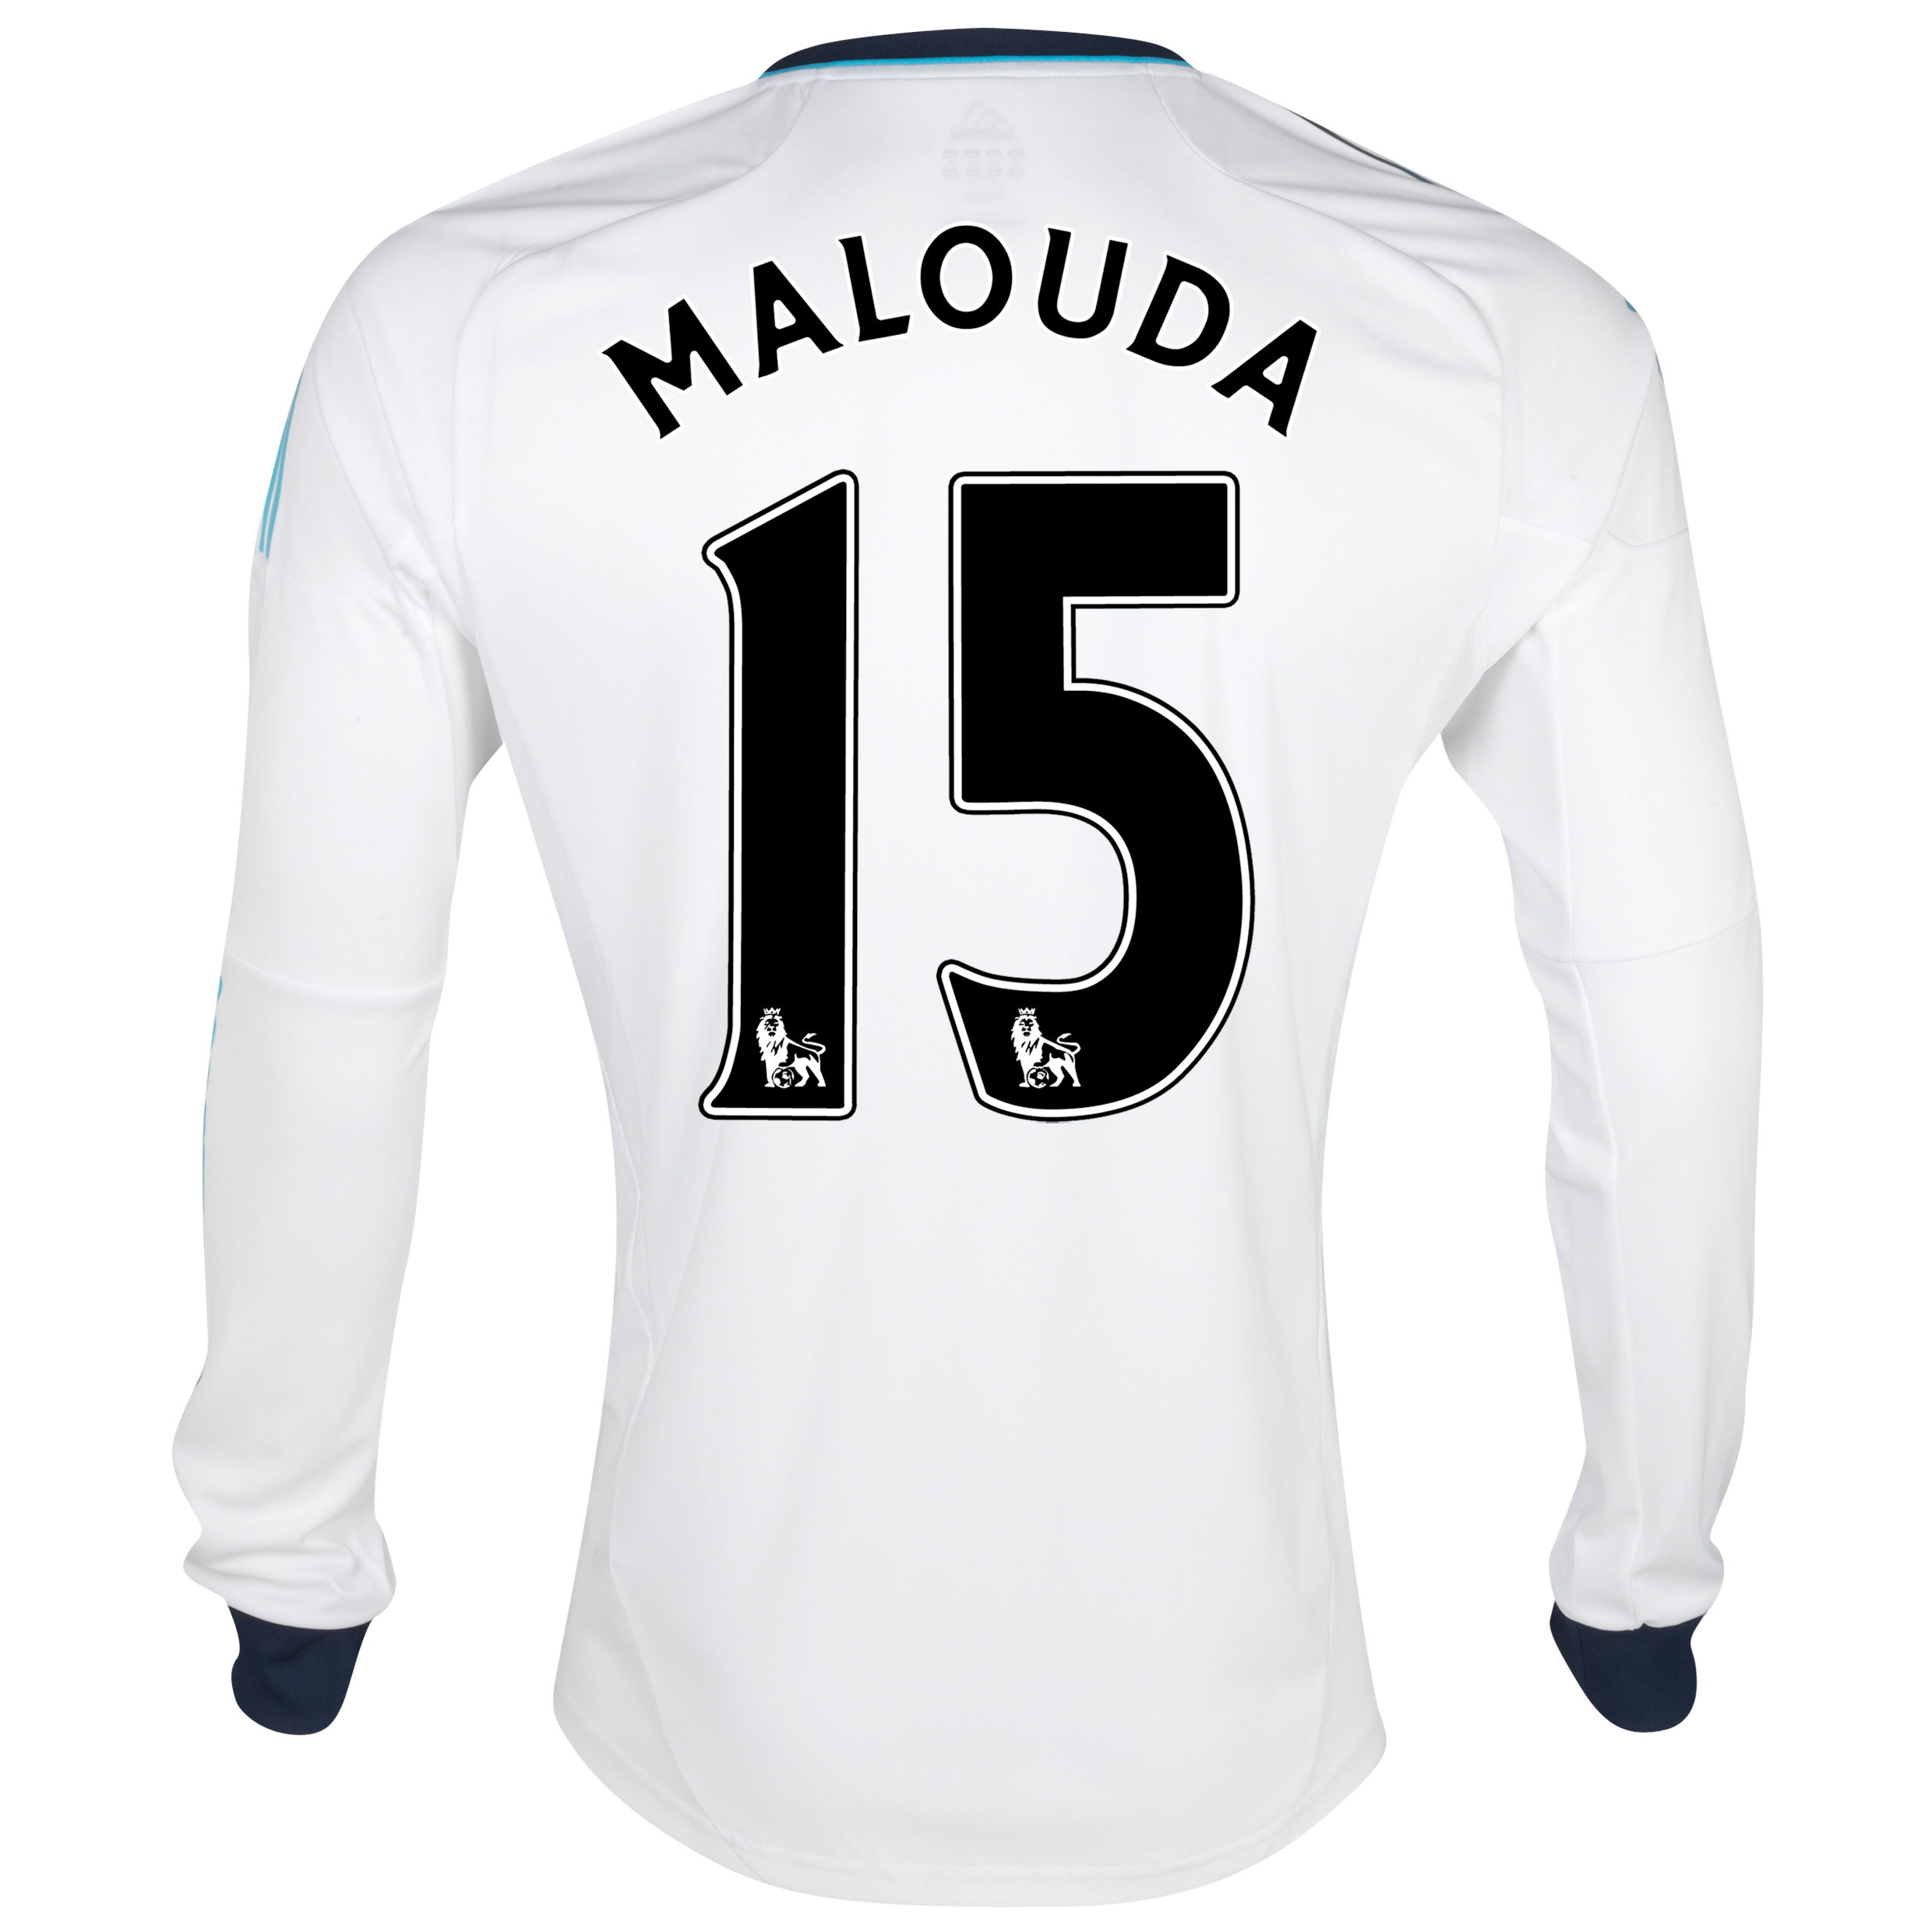 Chelsea Away Shirt 2012/13 - Long Sleeved  - Youths with Malouda 15 printing